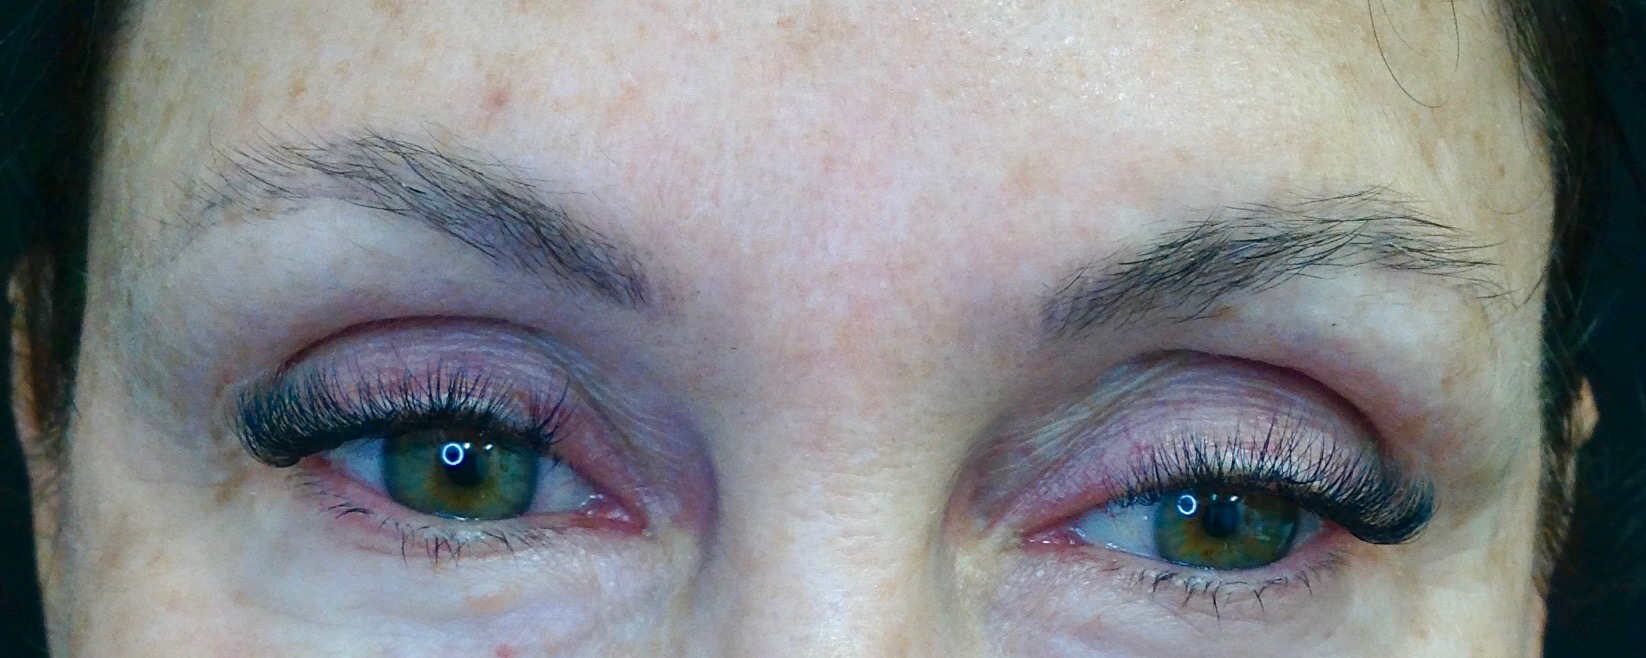 AFTER: One session of removal has lightened the pigment enough to re-design and recolor the brows in a more complimentary shape and color.